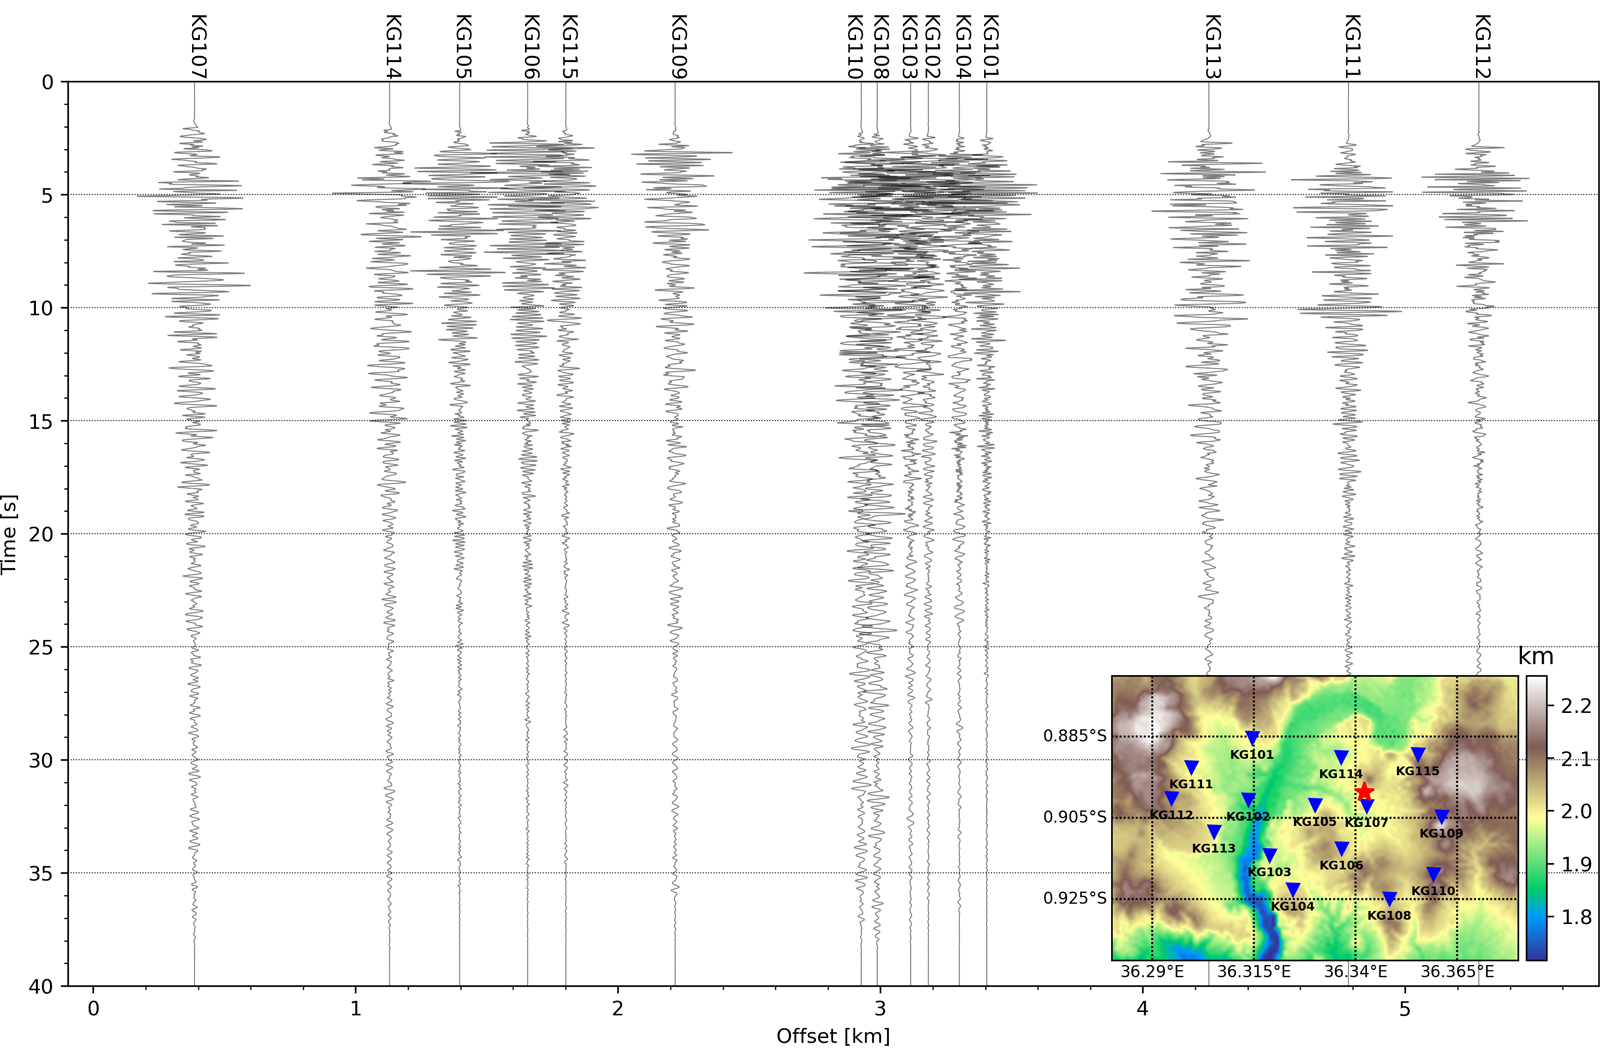 A seismogram shows a local magnitude 3.5 earthquake detected by the Olkaria field lab's seismic network on 2 August 2020